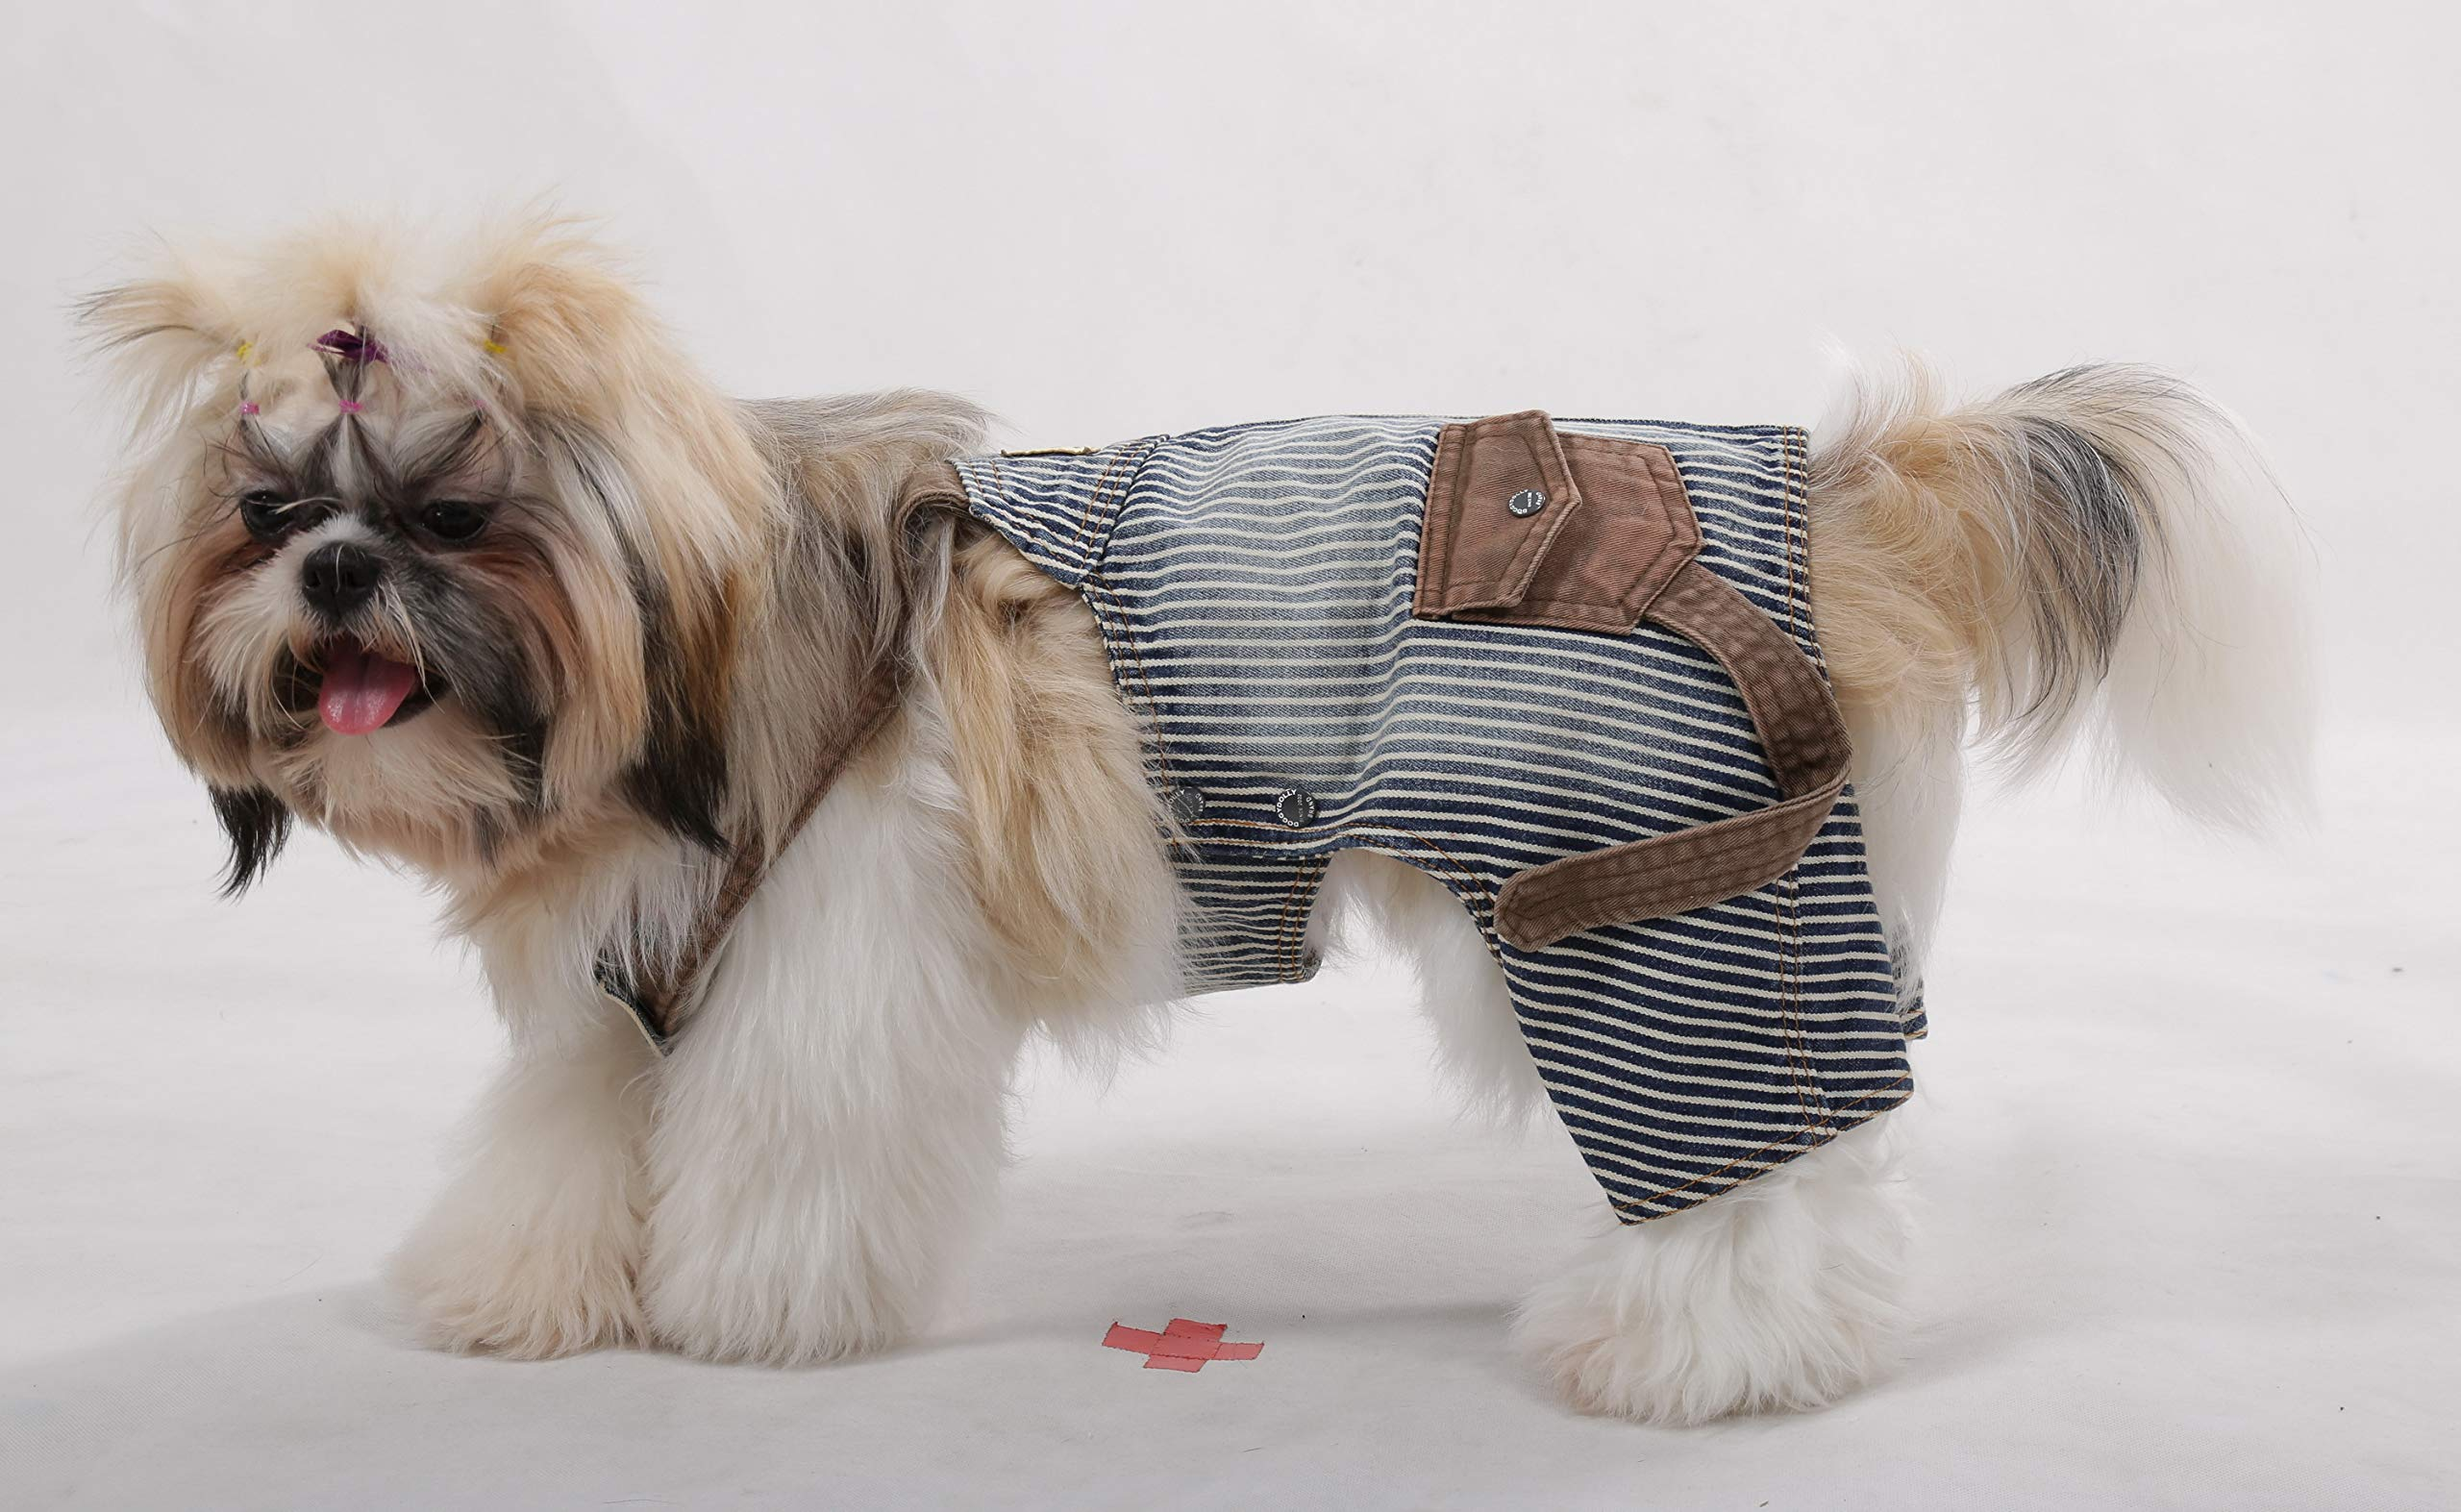 DoggyDolly Authentic Vintage Distressed Denim Overalls, XX-Large by Doggy Dolly